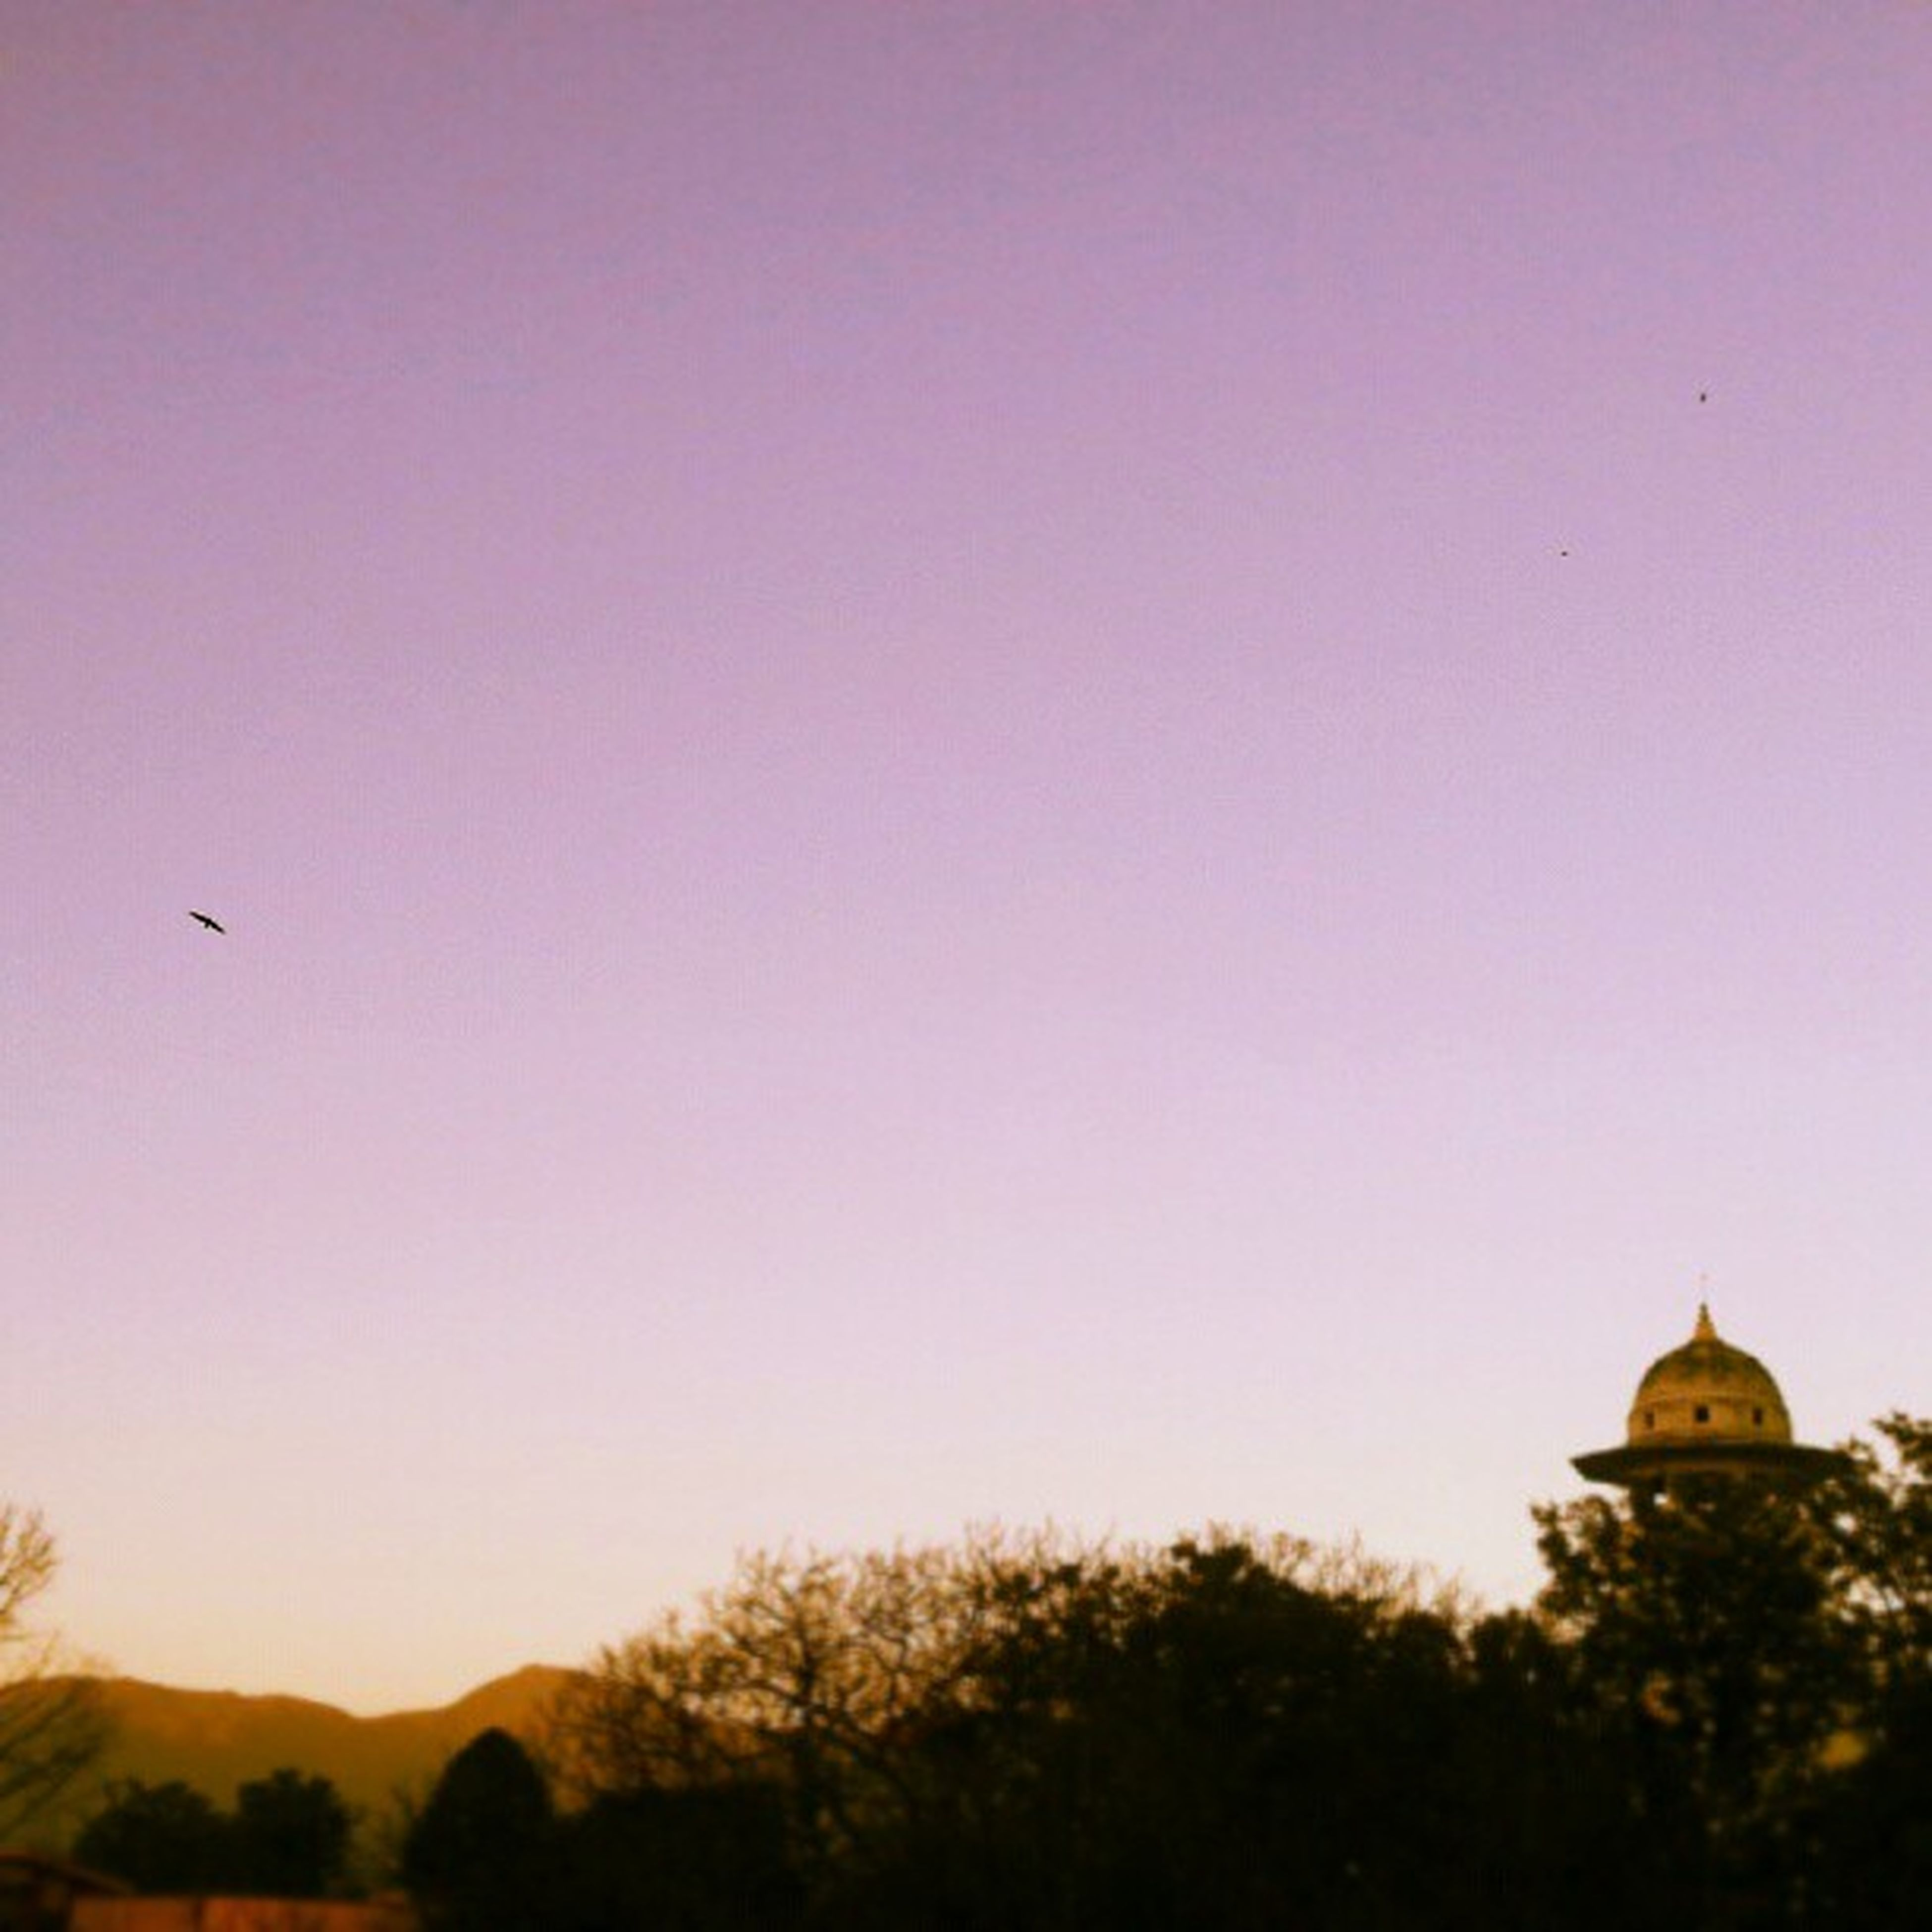 clear sky, copy space, architecture, built structure, building exterior, religion, sunset, place of worship, low angle view, silhouette, spirituality, nature, dusk, tree, sky, dome, scenics, outdoors, church